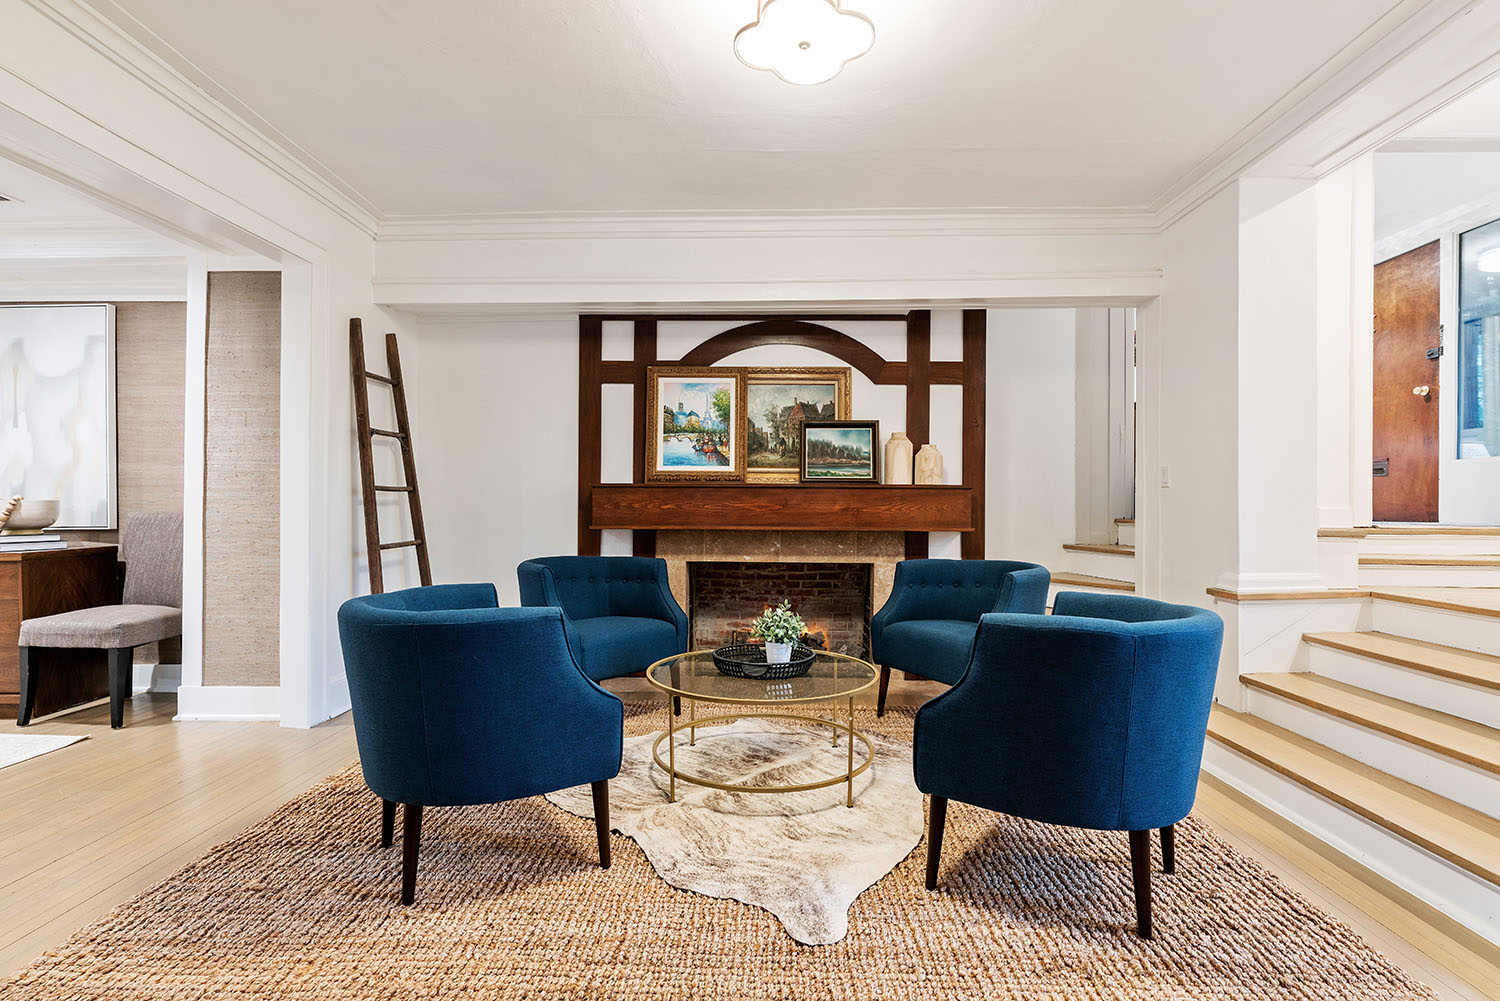 Living room of a Chicago house with decor and furniture